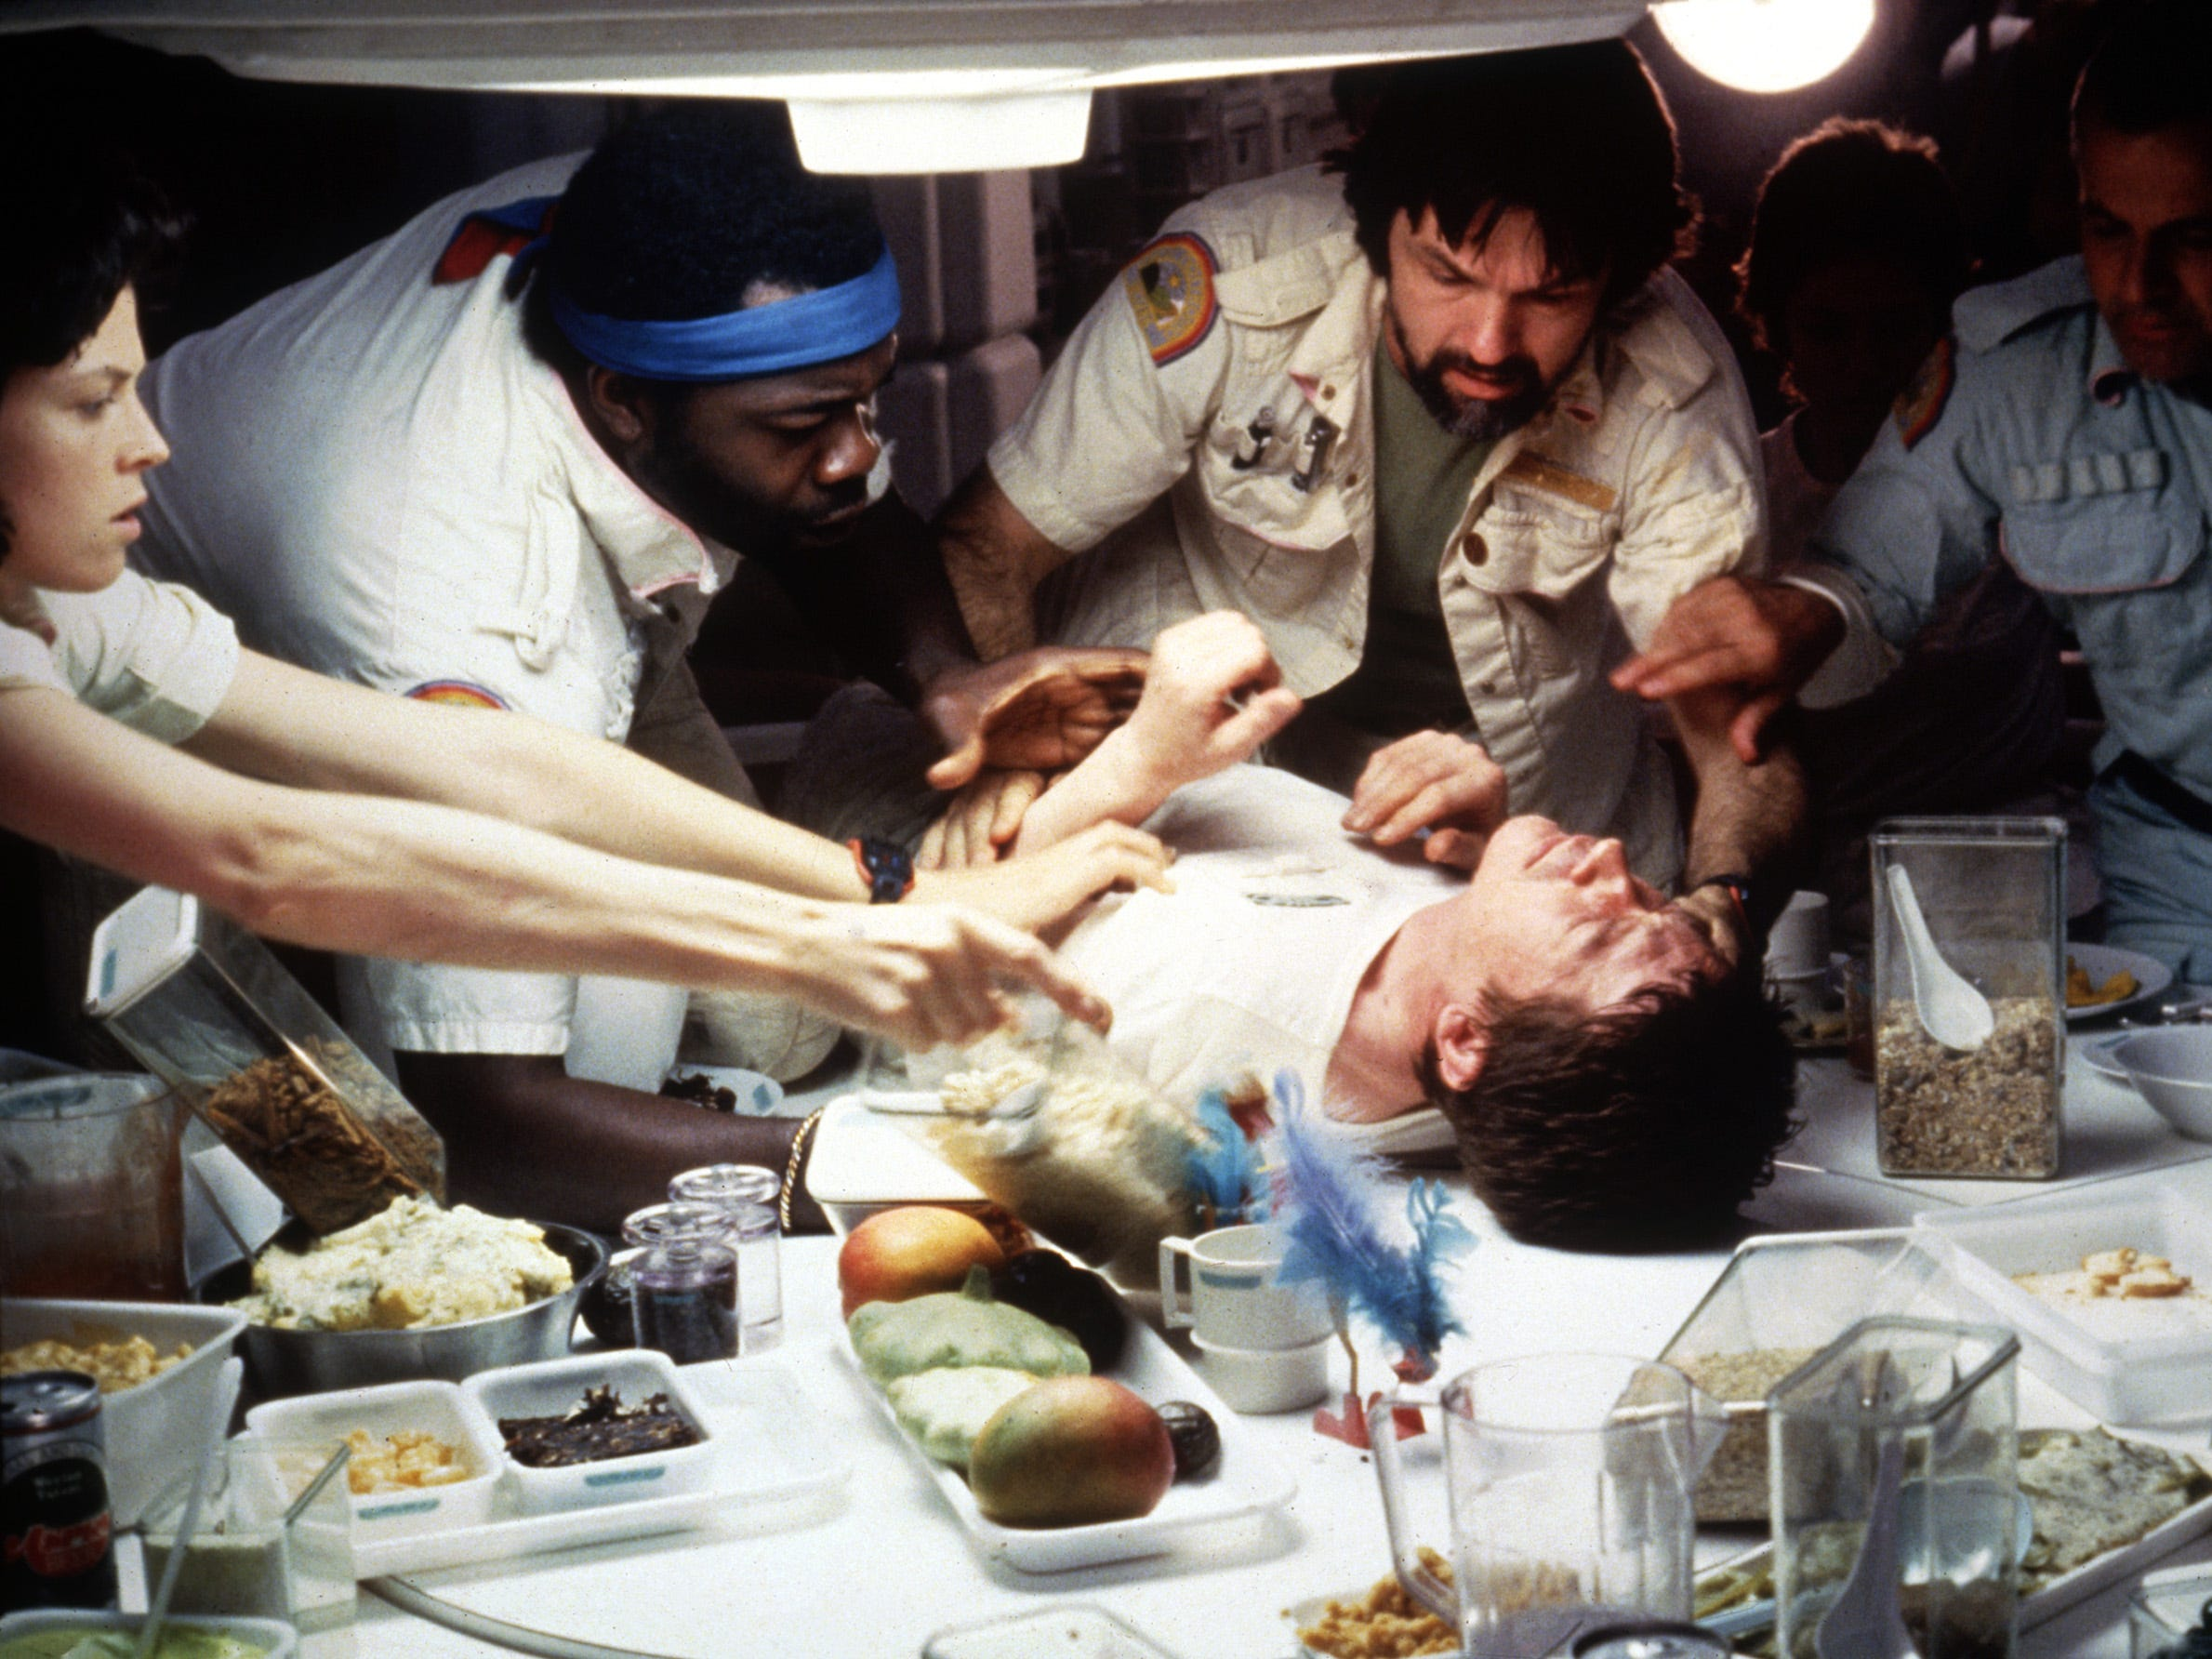 New 'Alien' documentary shows funny, phallic origins of that famous 'chestburster' scene